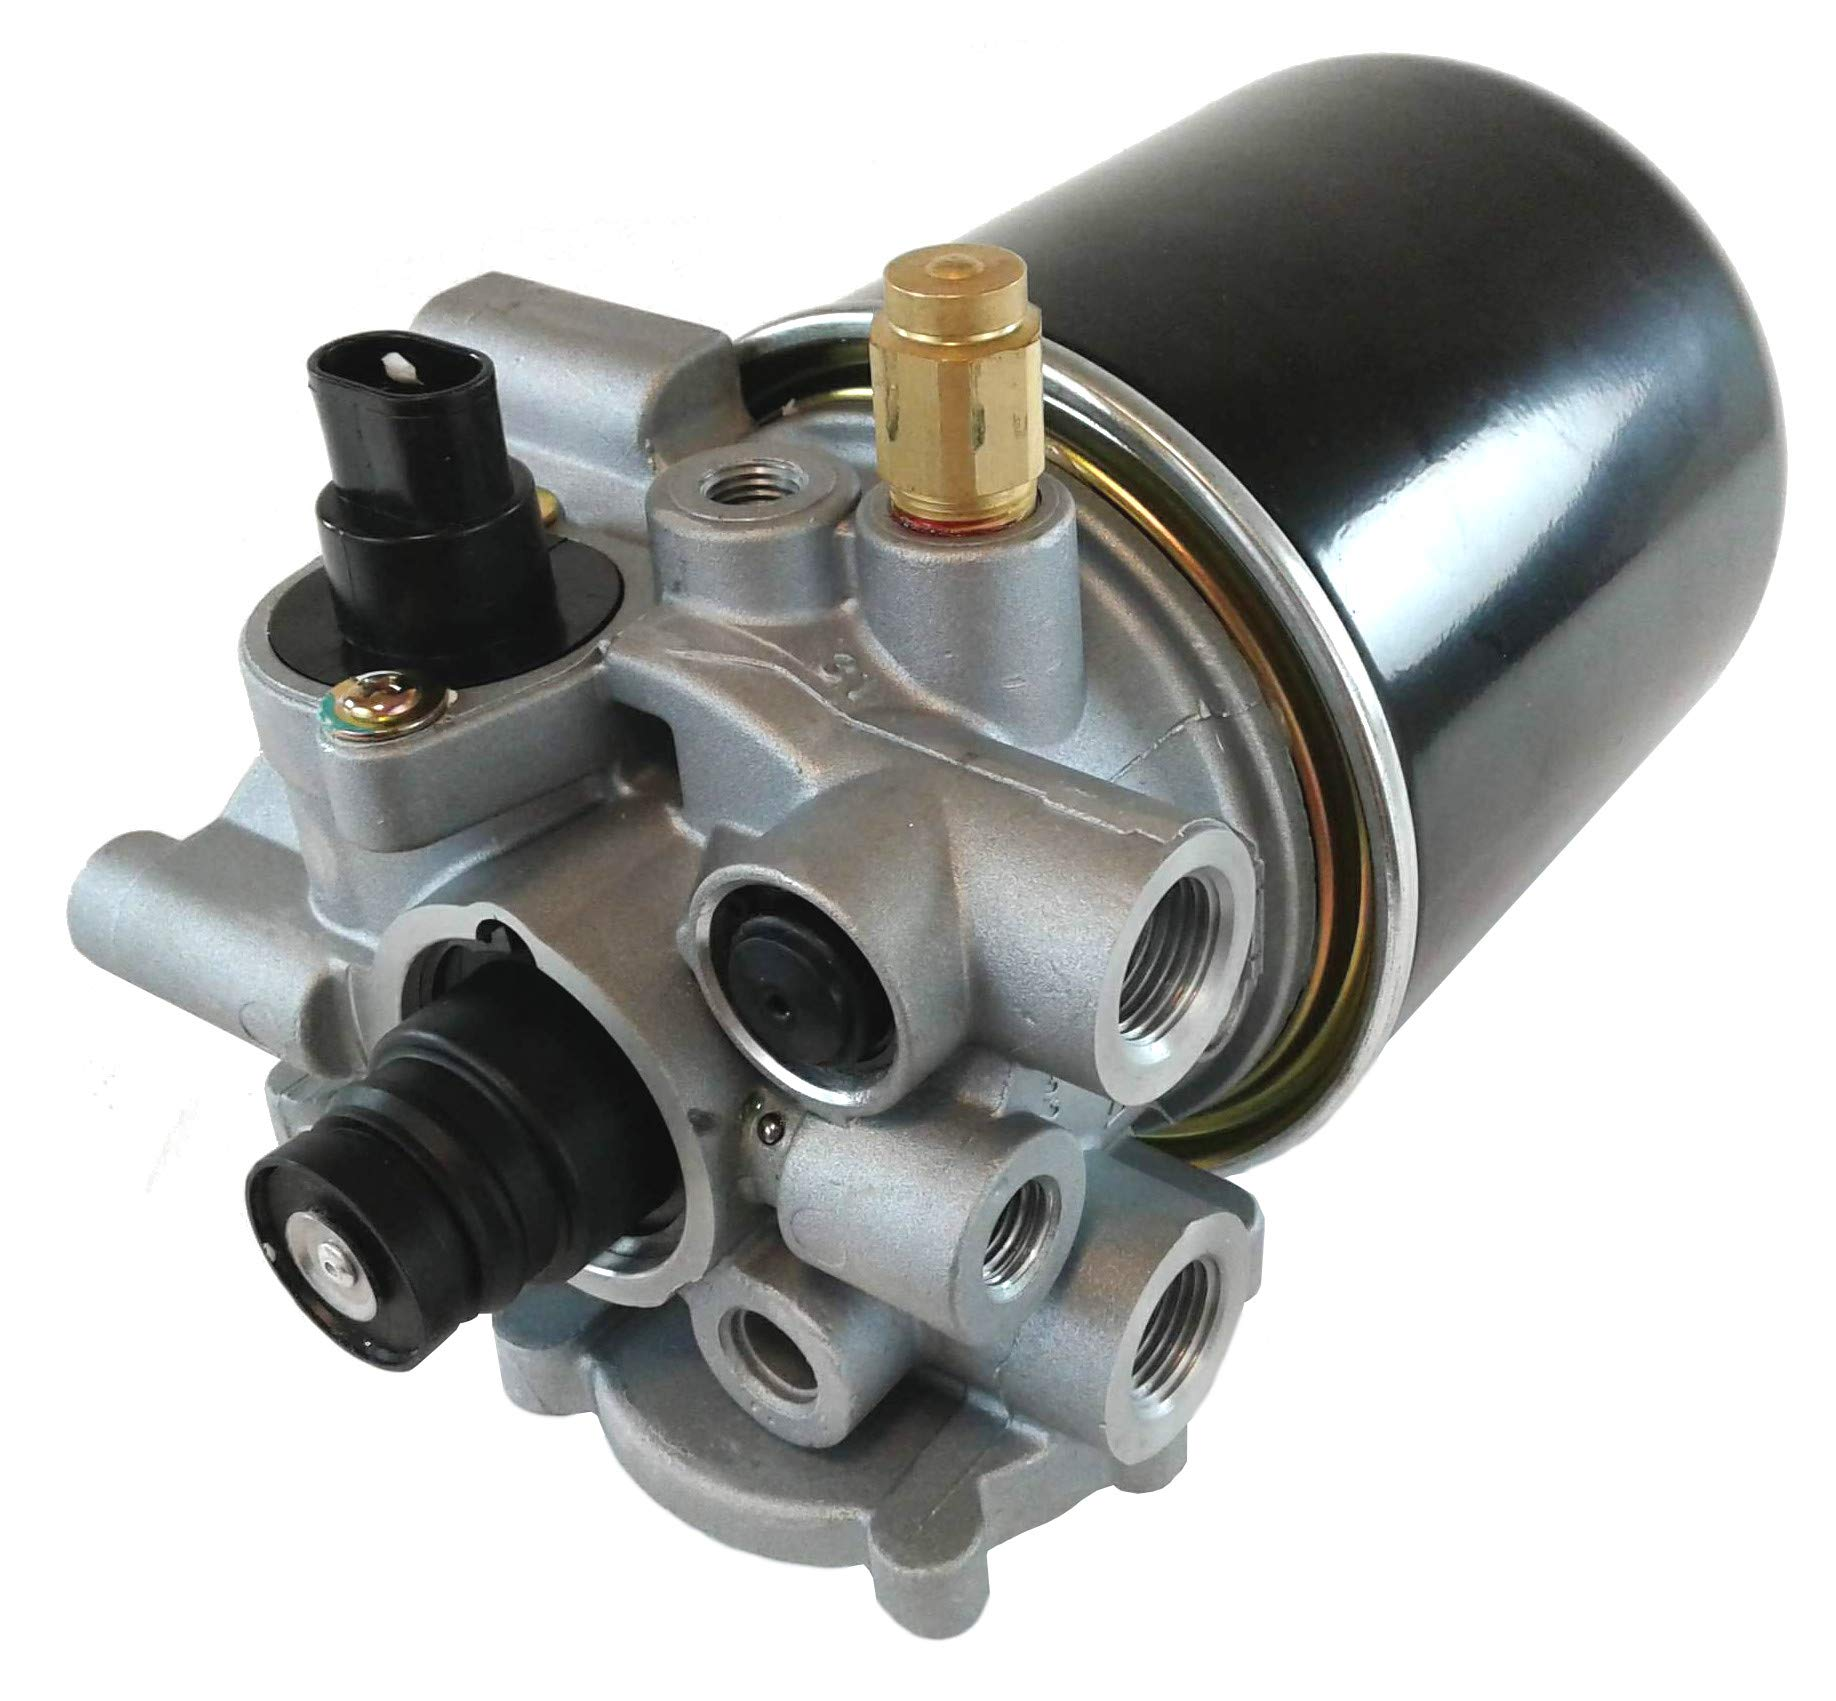 Air Brake Dryer Assembly with Spin-on Cartridge for Heavy Duty Big Rigs Trucks, Tractors, Buses